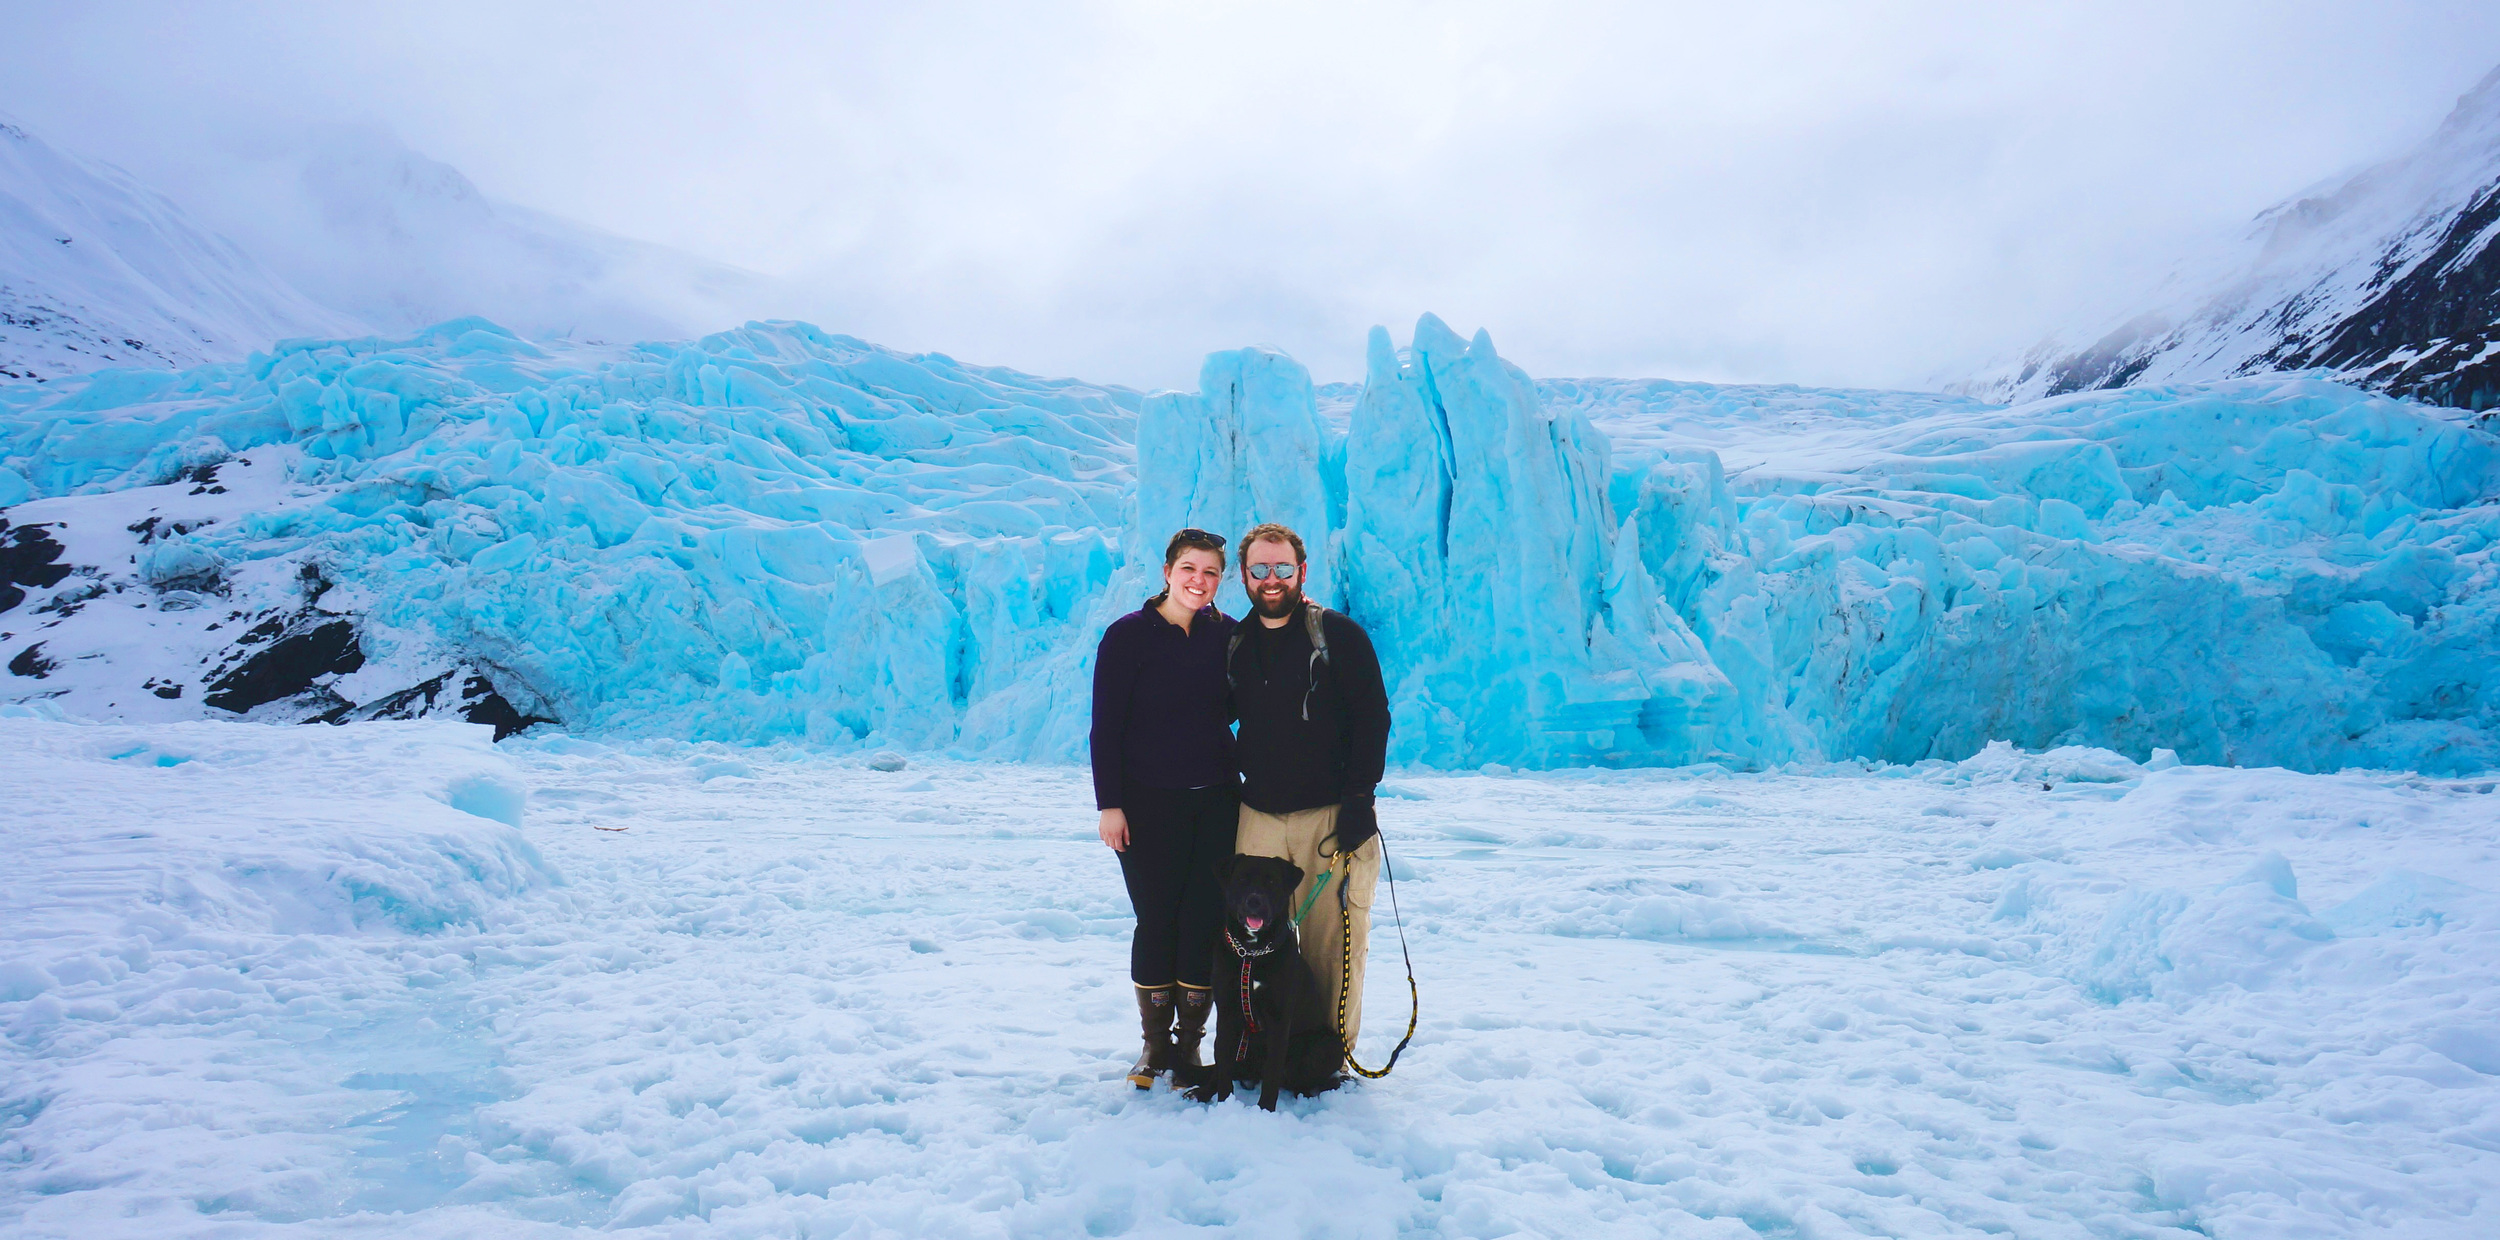 This will always be a favorite photo of Tony & me. We hiked to Portage Glacier and were rewarded with this epic shot from Mother Nature.